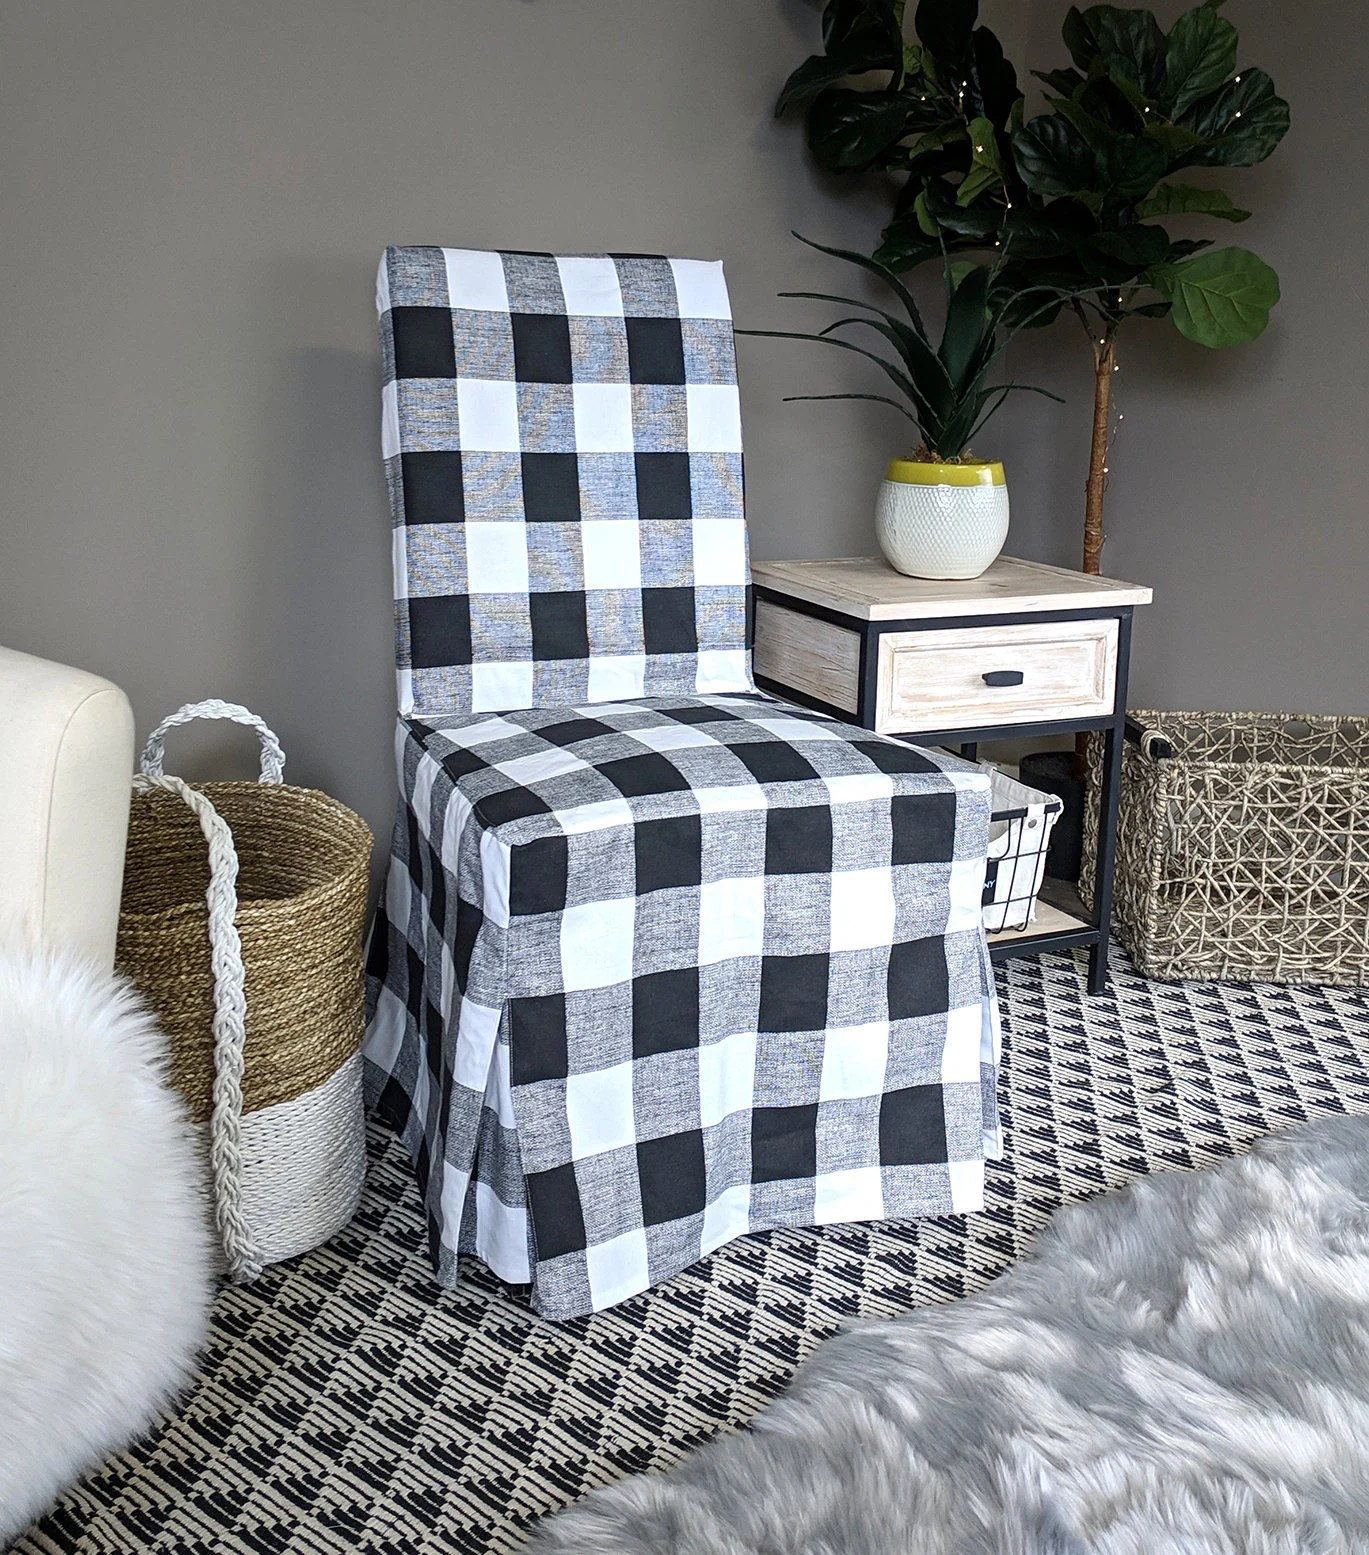 tartan dining chair covers for sale patio chairs at walmart plaid buffalo check black white ikea henriksdal etsy image 0